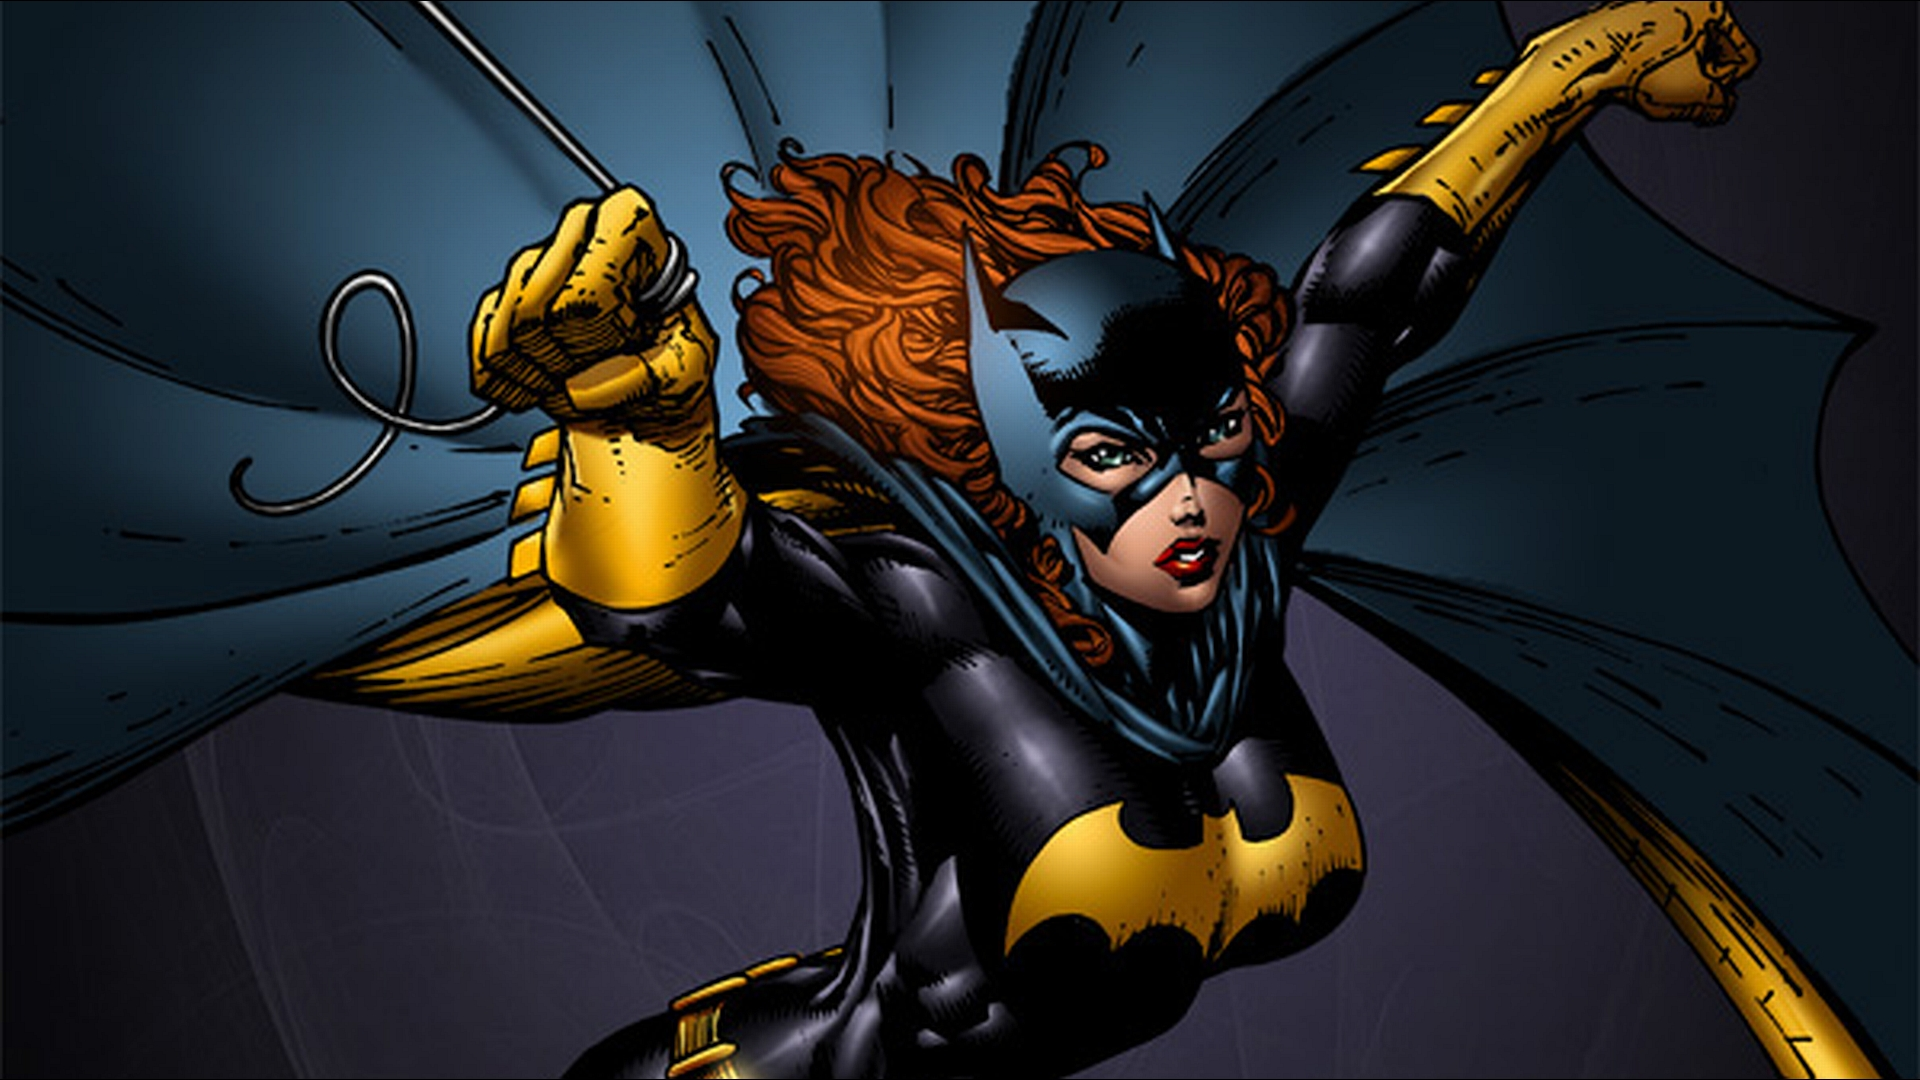 Comics - Batgirl Wallpaper